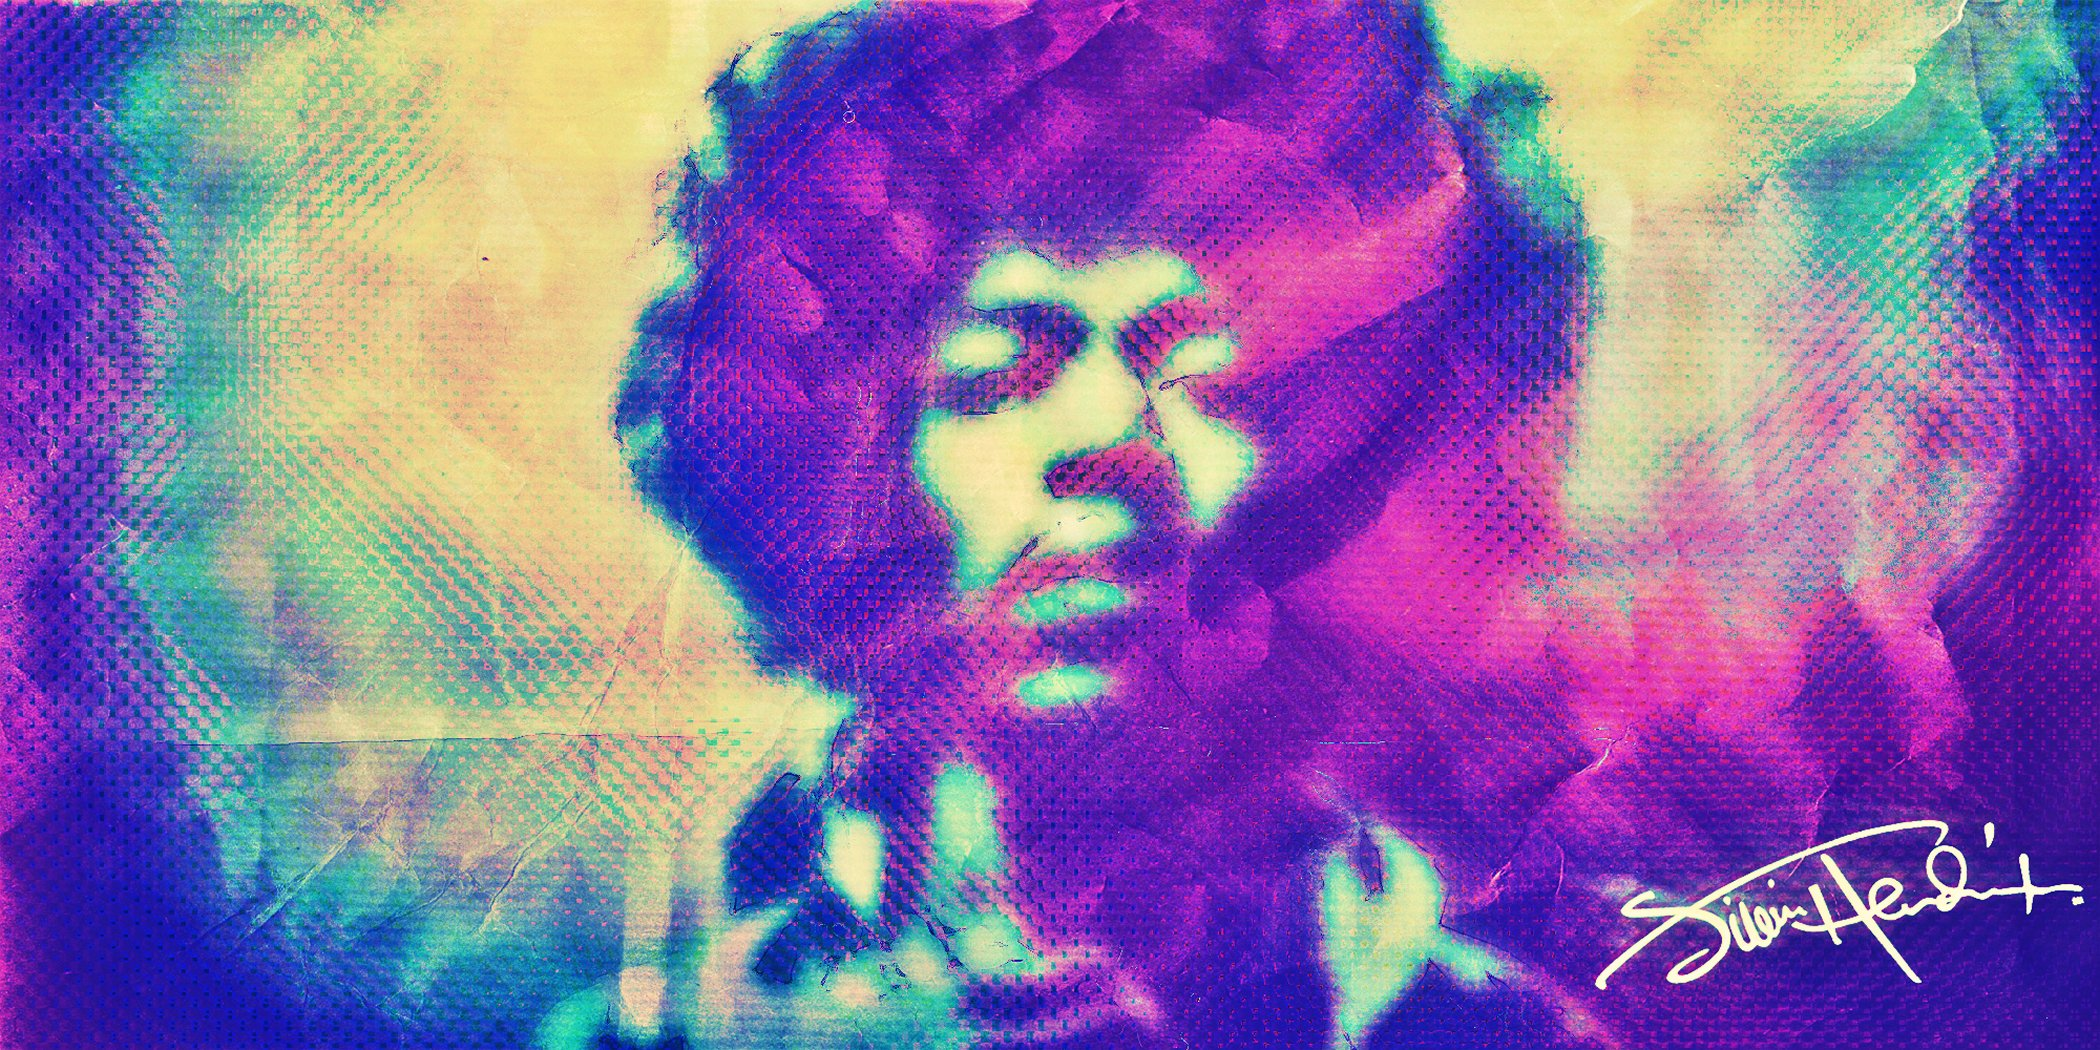 jimi hendrix wallpaper 10-#36